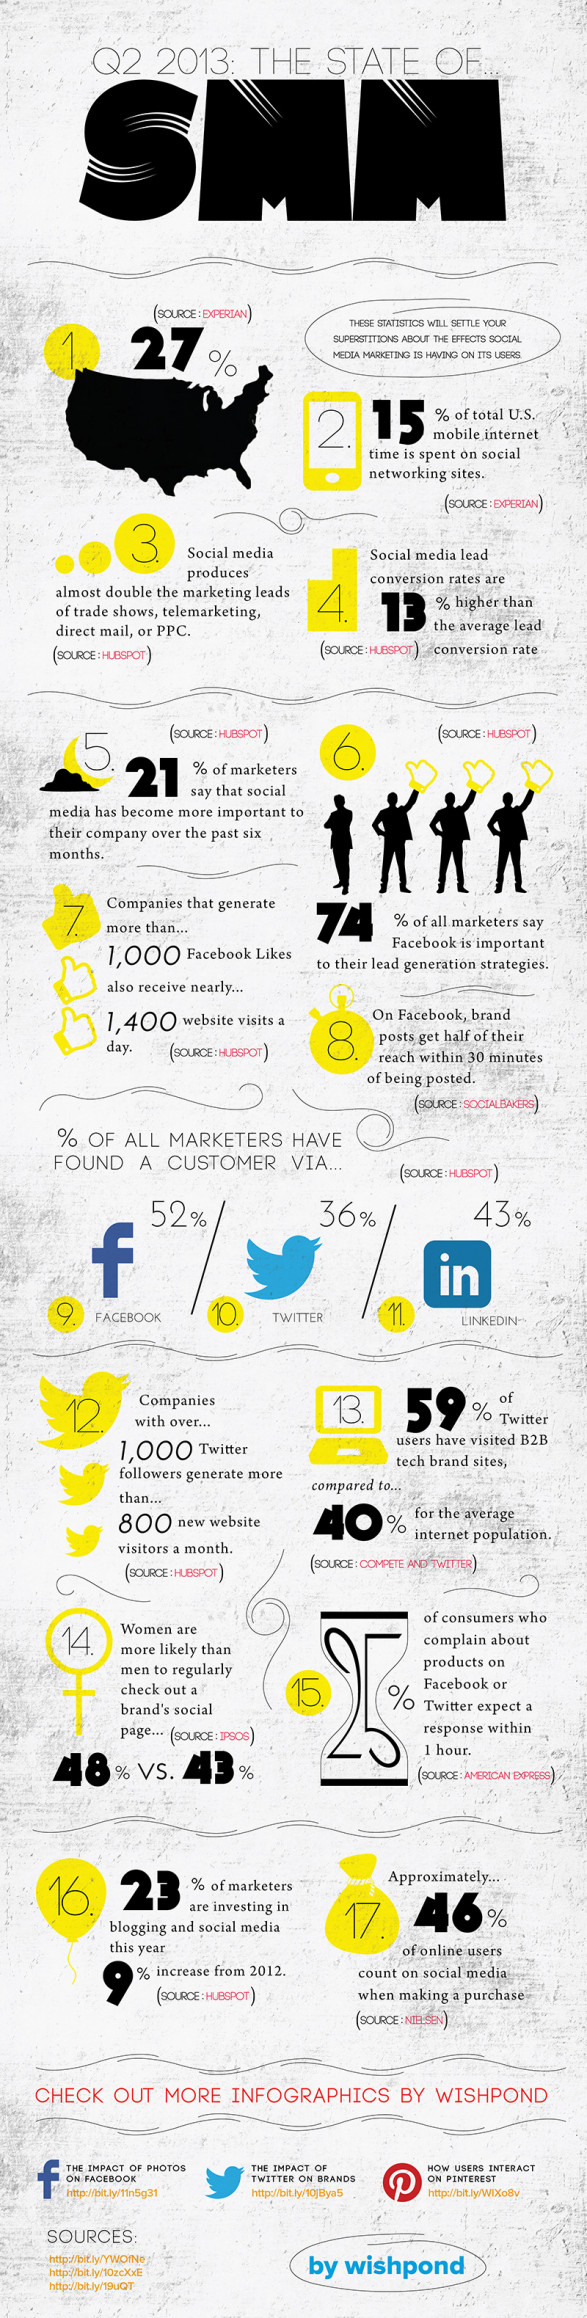 The State Of Social Media Marketing In 2013